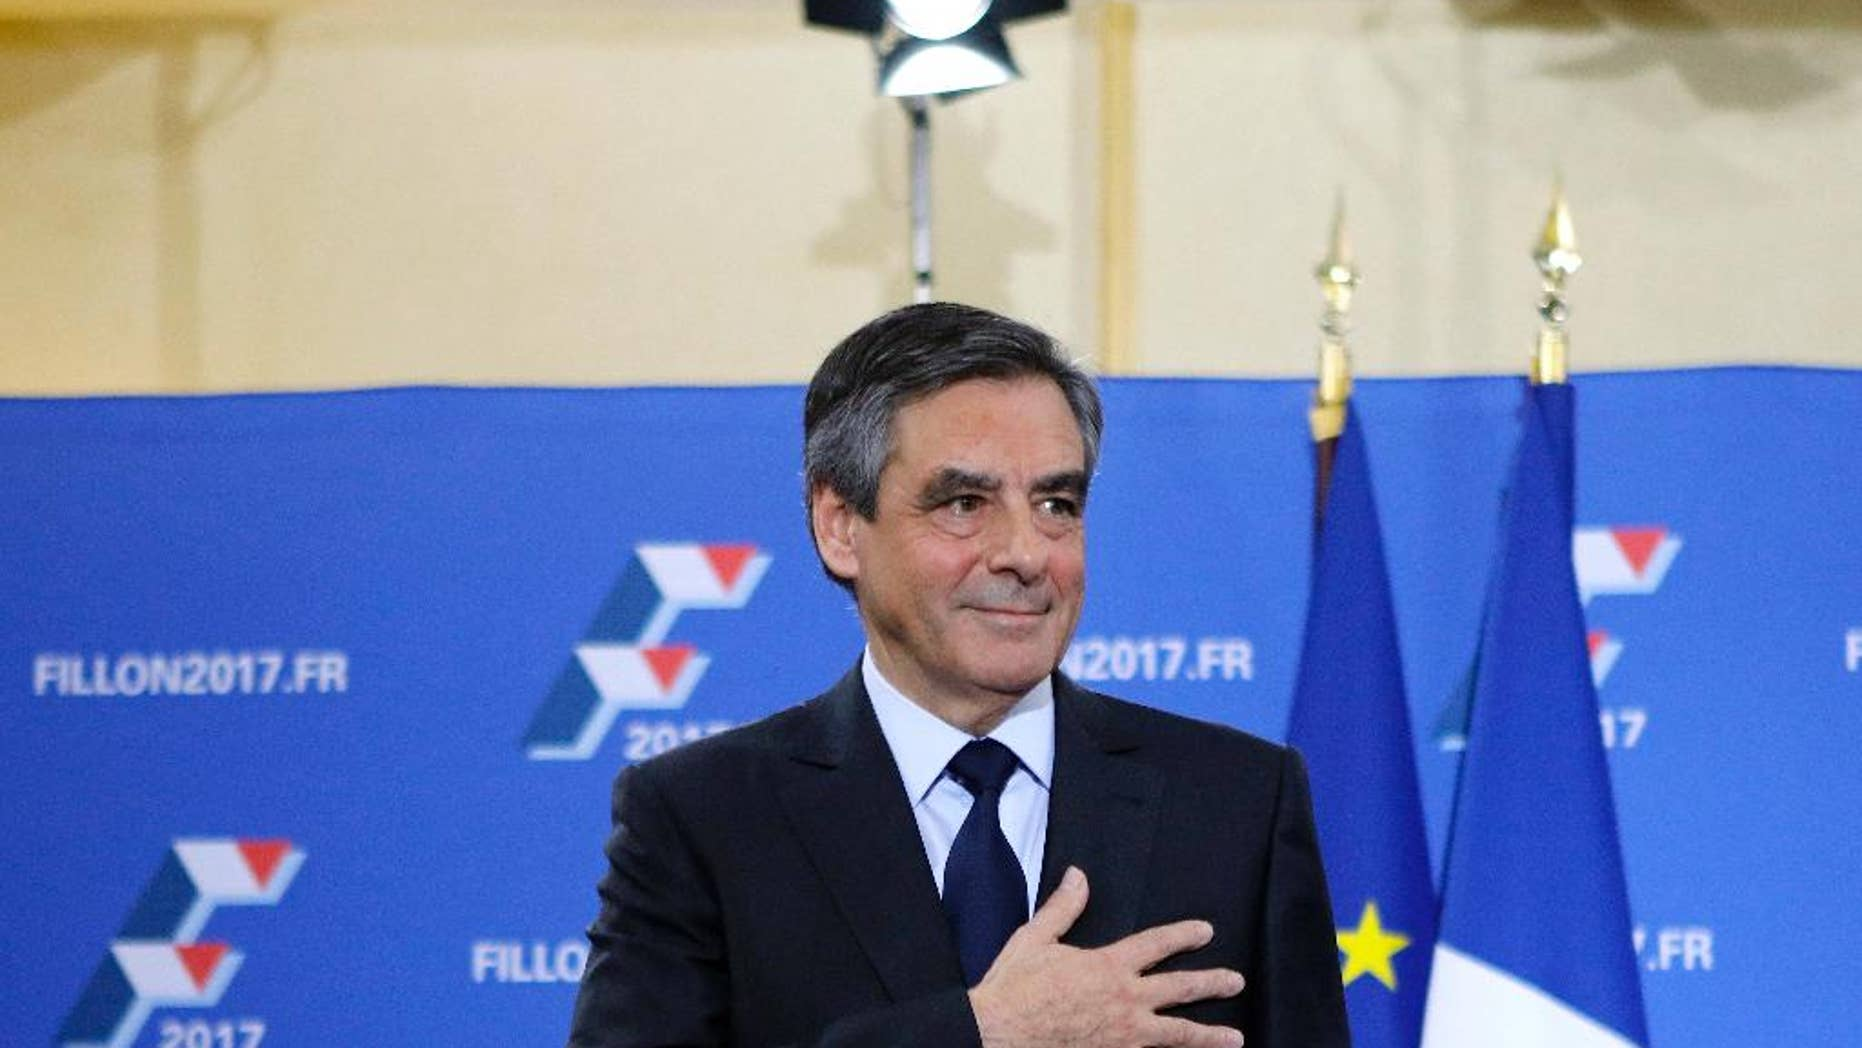 Francois Fillon puts his hand on his hear after delivering a speech following the conservative presidential primary Sunday, Nov. 27, 2016 in Paris. Fillon won France's first-ever conservative presidential primary Sunday after promising drastic free-market reforms and a crackdown on immigration and Islamic extremism, beating a more moderate rival who had warned of encroaching populism. (AP Photo/Kamil Zihnioglu)